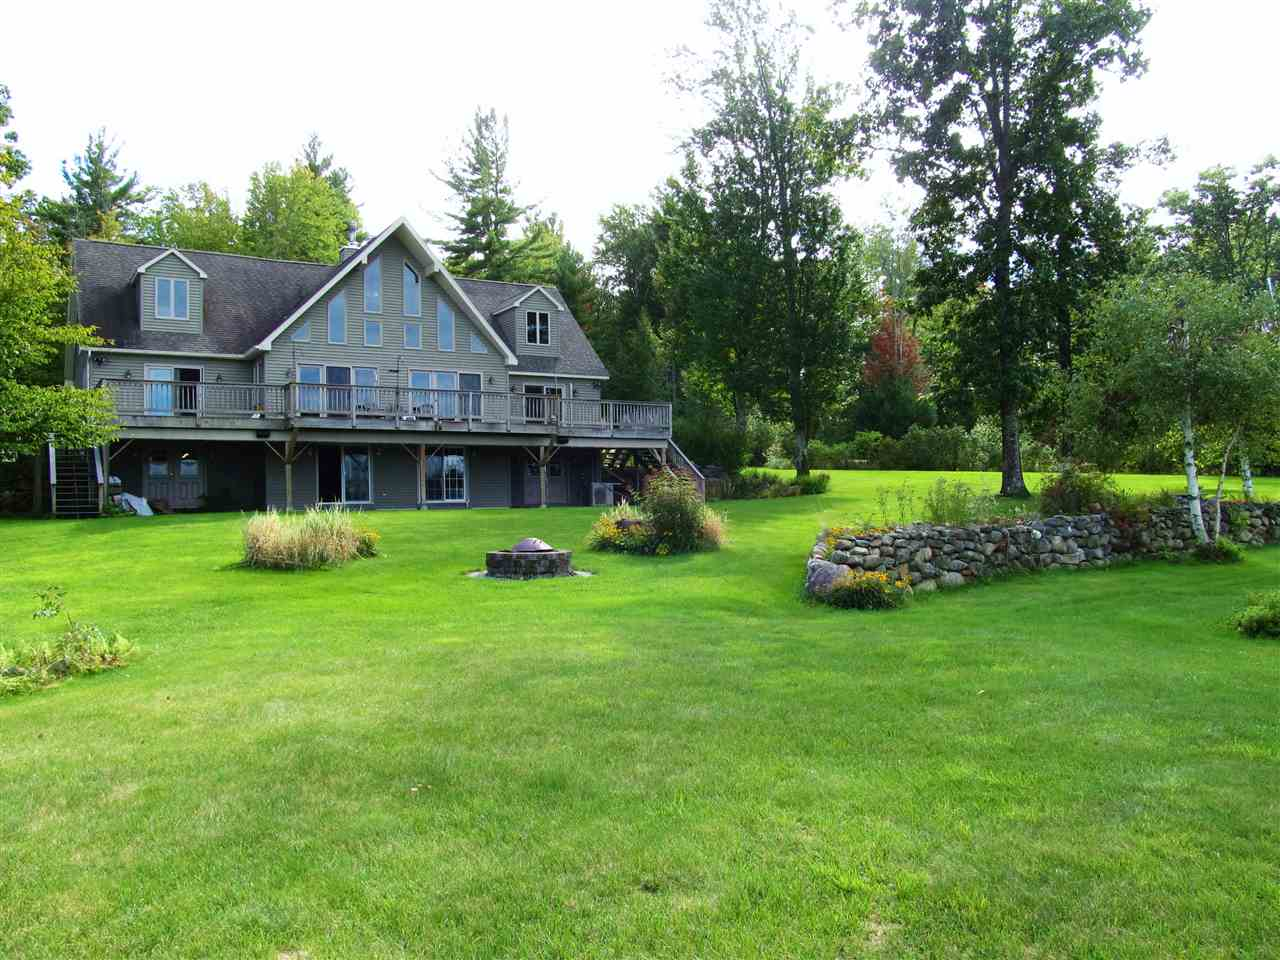 Photo of 212 College Hill Road Hopkinton NH 03229